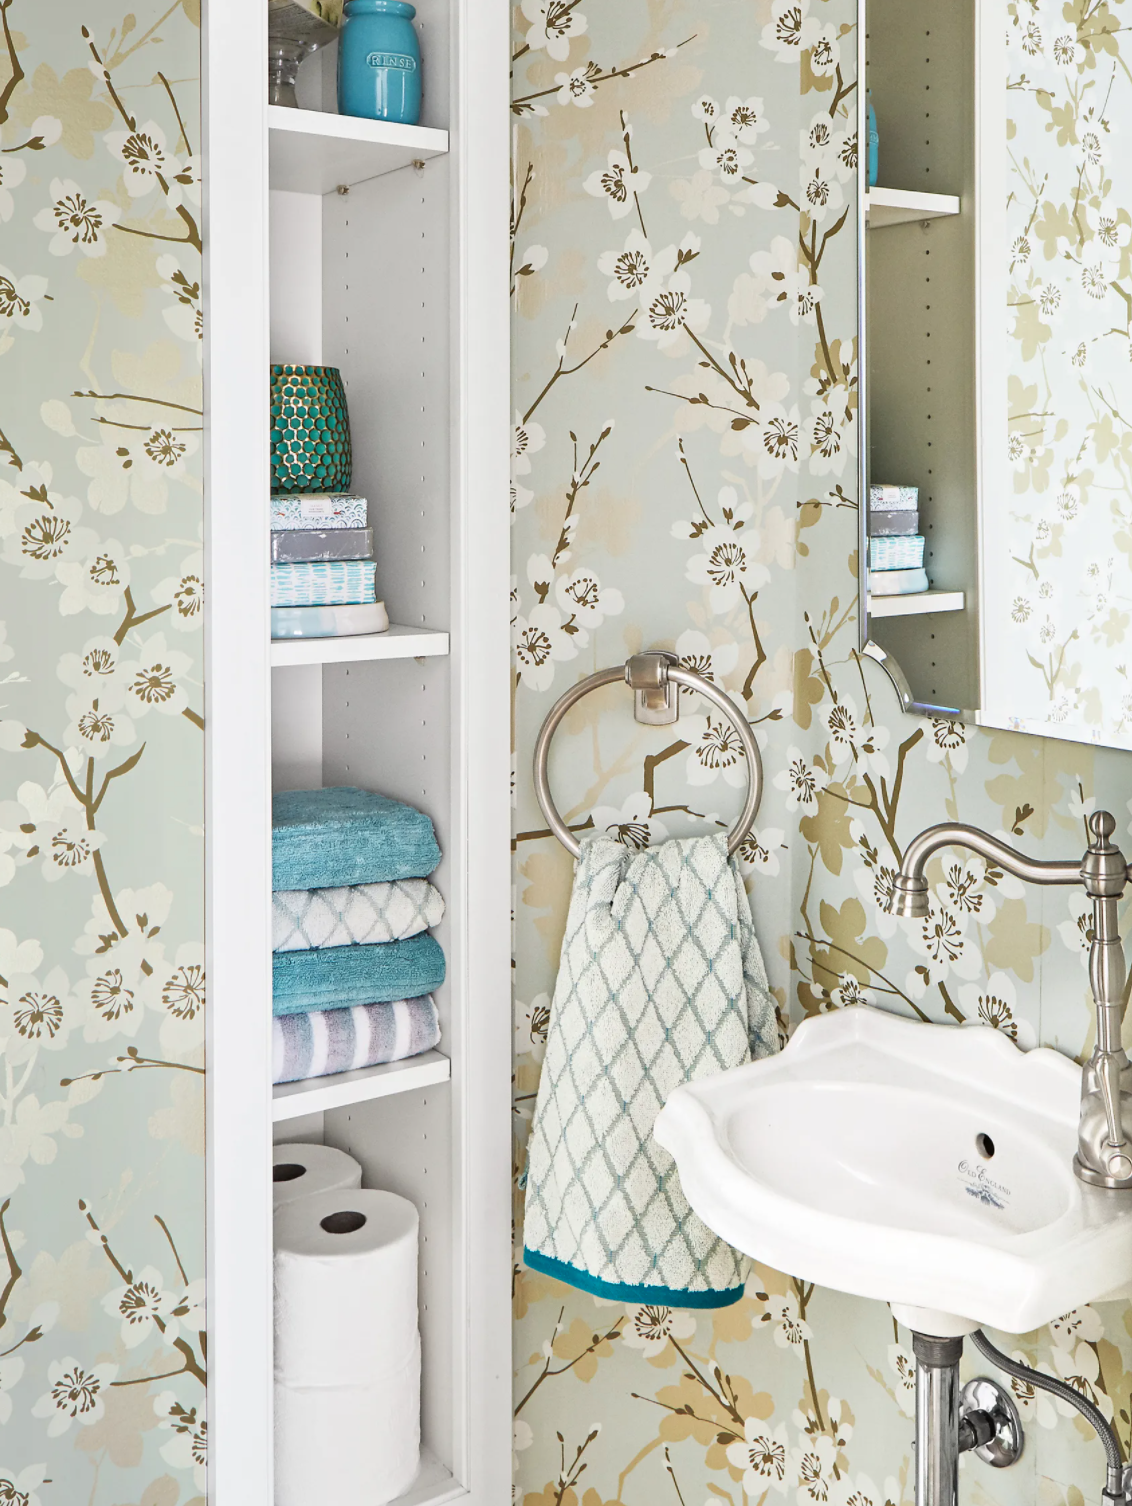 Small Between The Studs Bathroom Niche trimmed with white molding and with floral wallpaper.